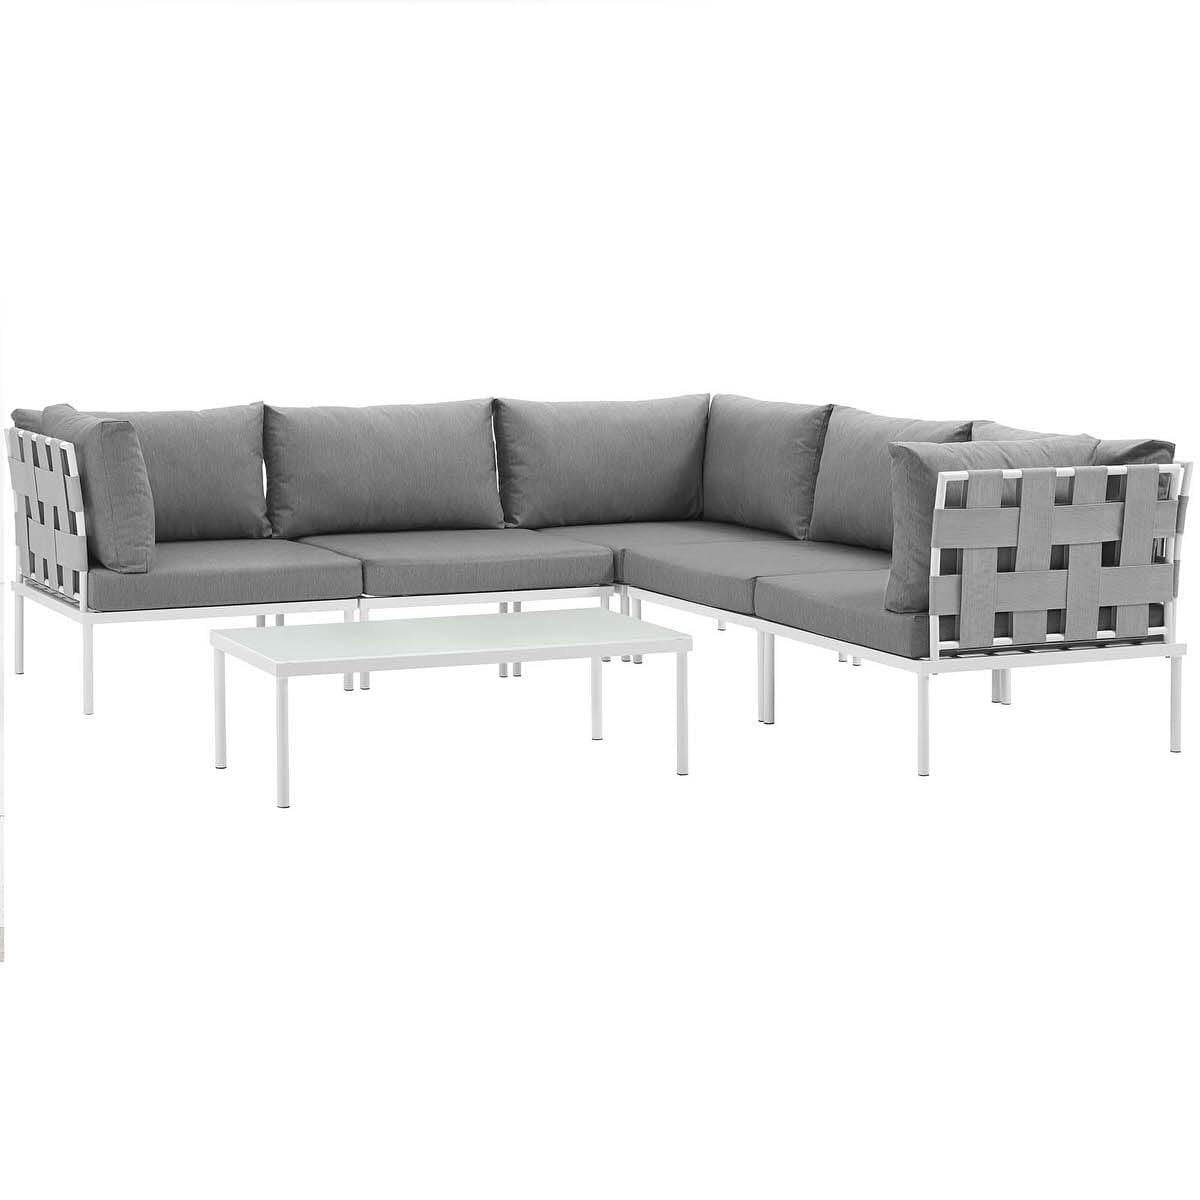 Harmony 6 Piece Outdoor Patio Aluminum Sectional Sofa Set White Gray by  Modern Living